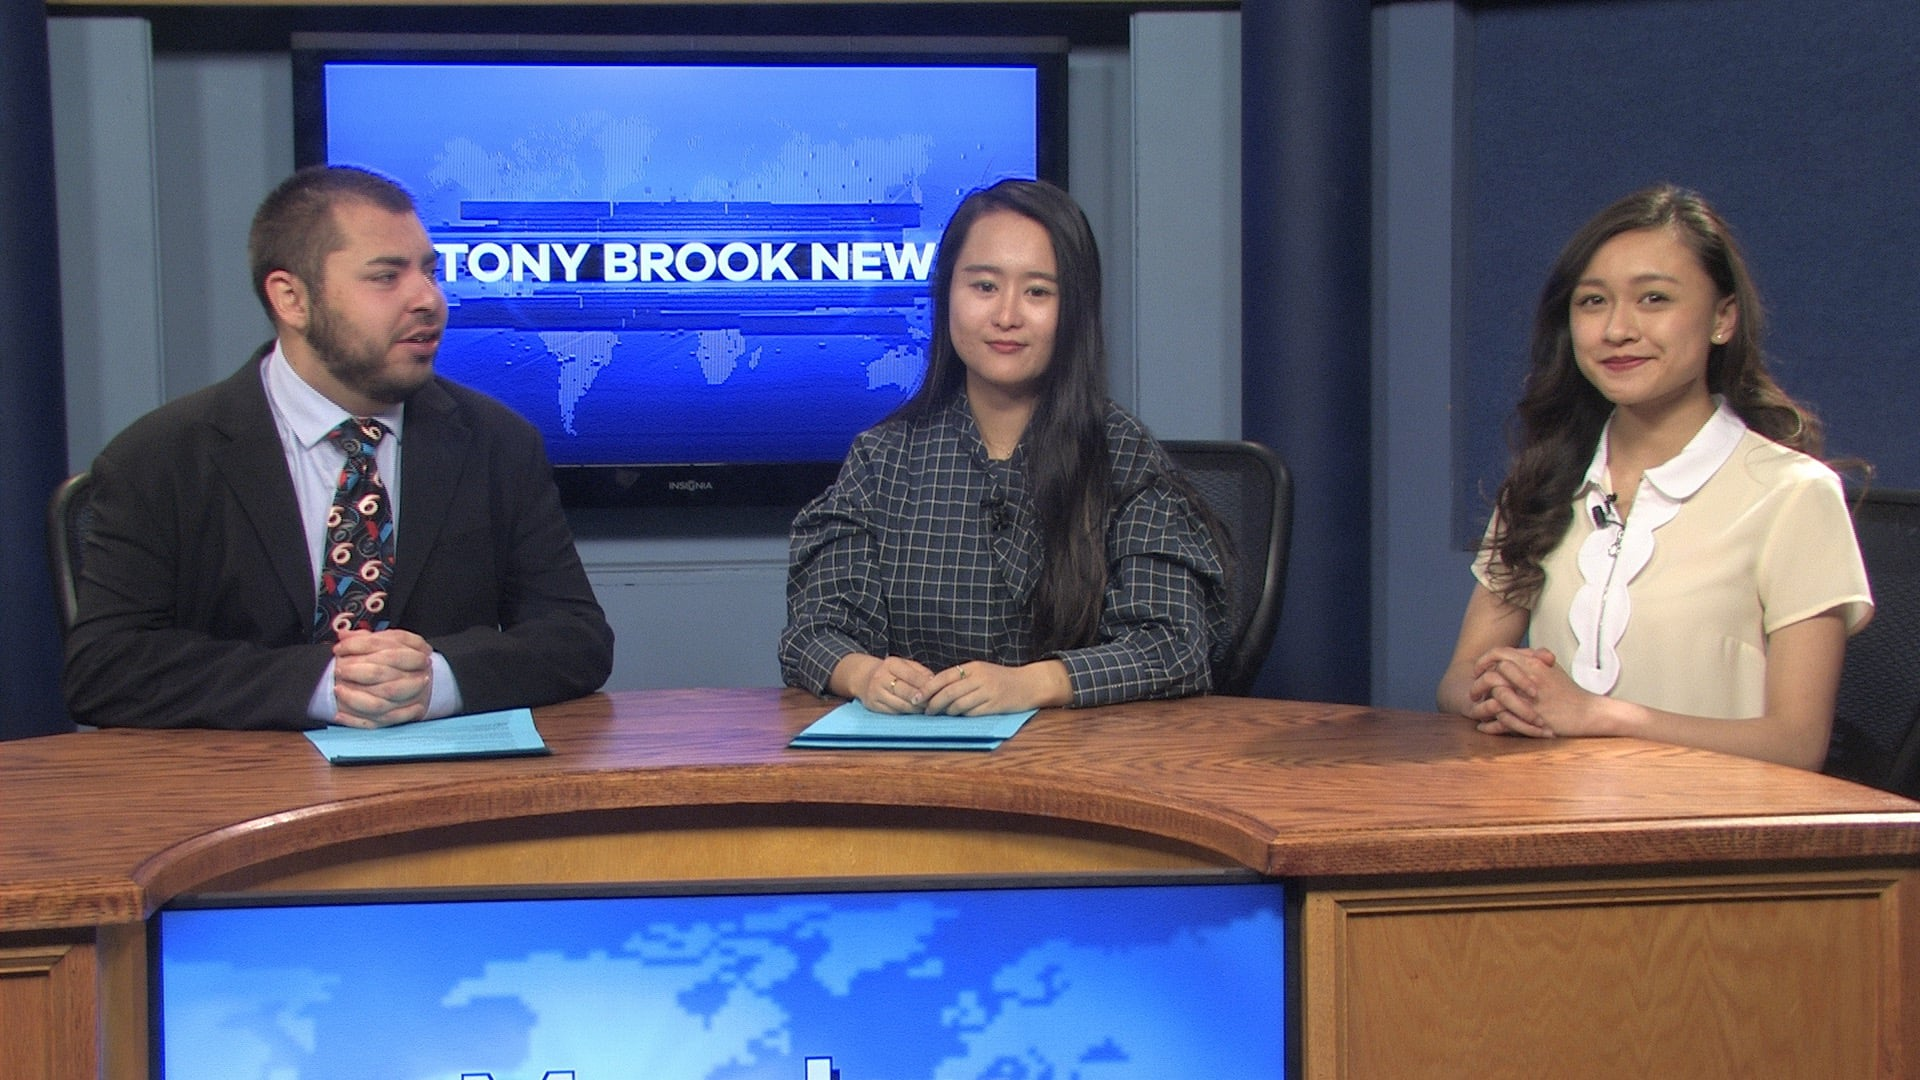 Stony Brook News – April 9, 2018